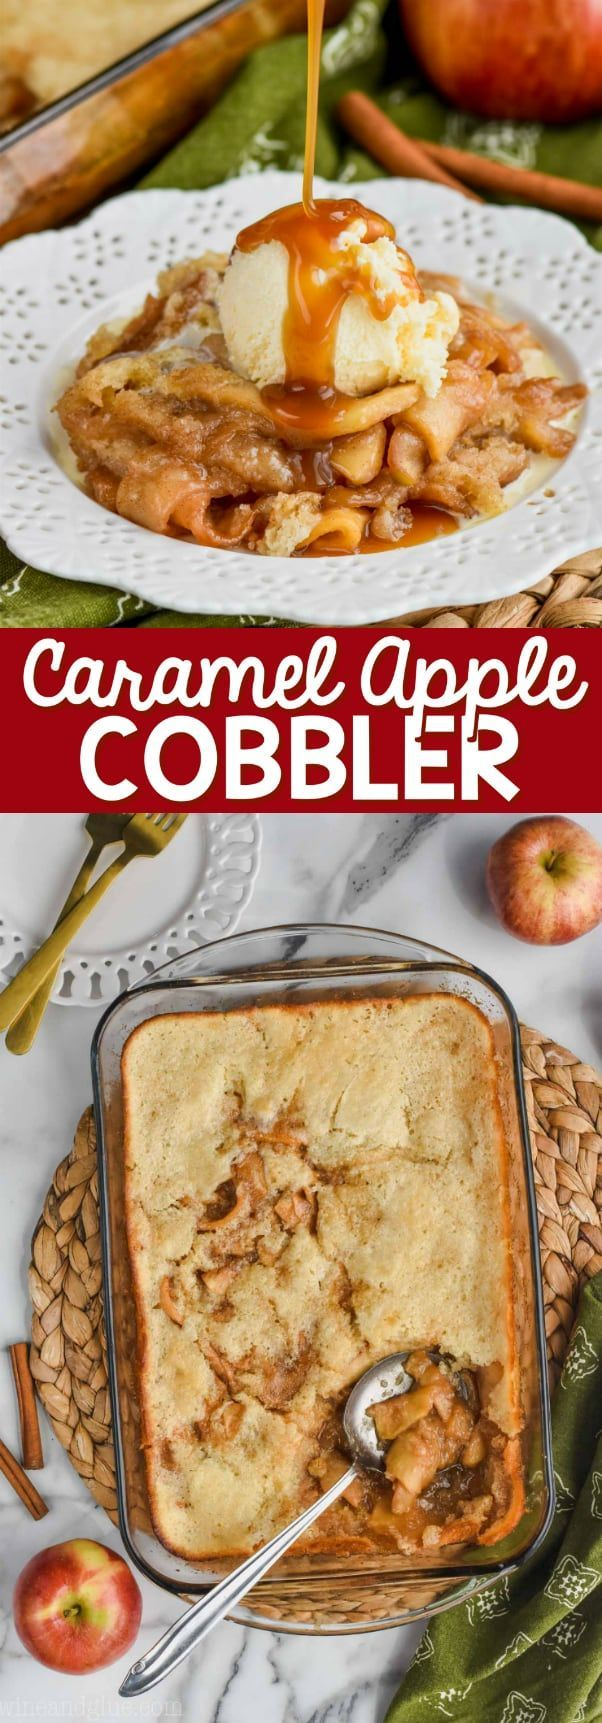 This Caramel Apple Cobbler Recipe is the perfect